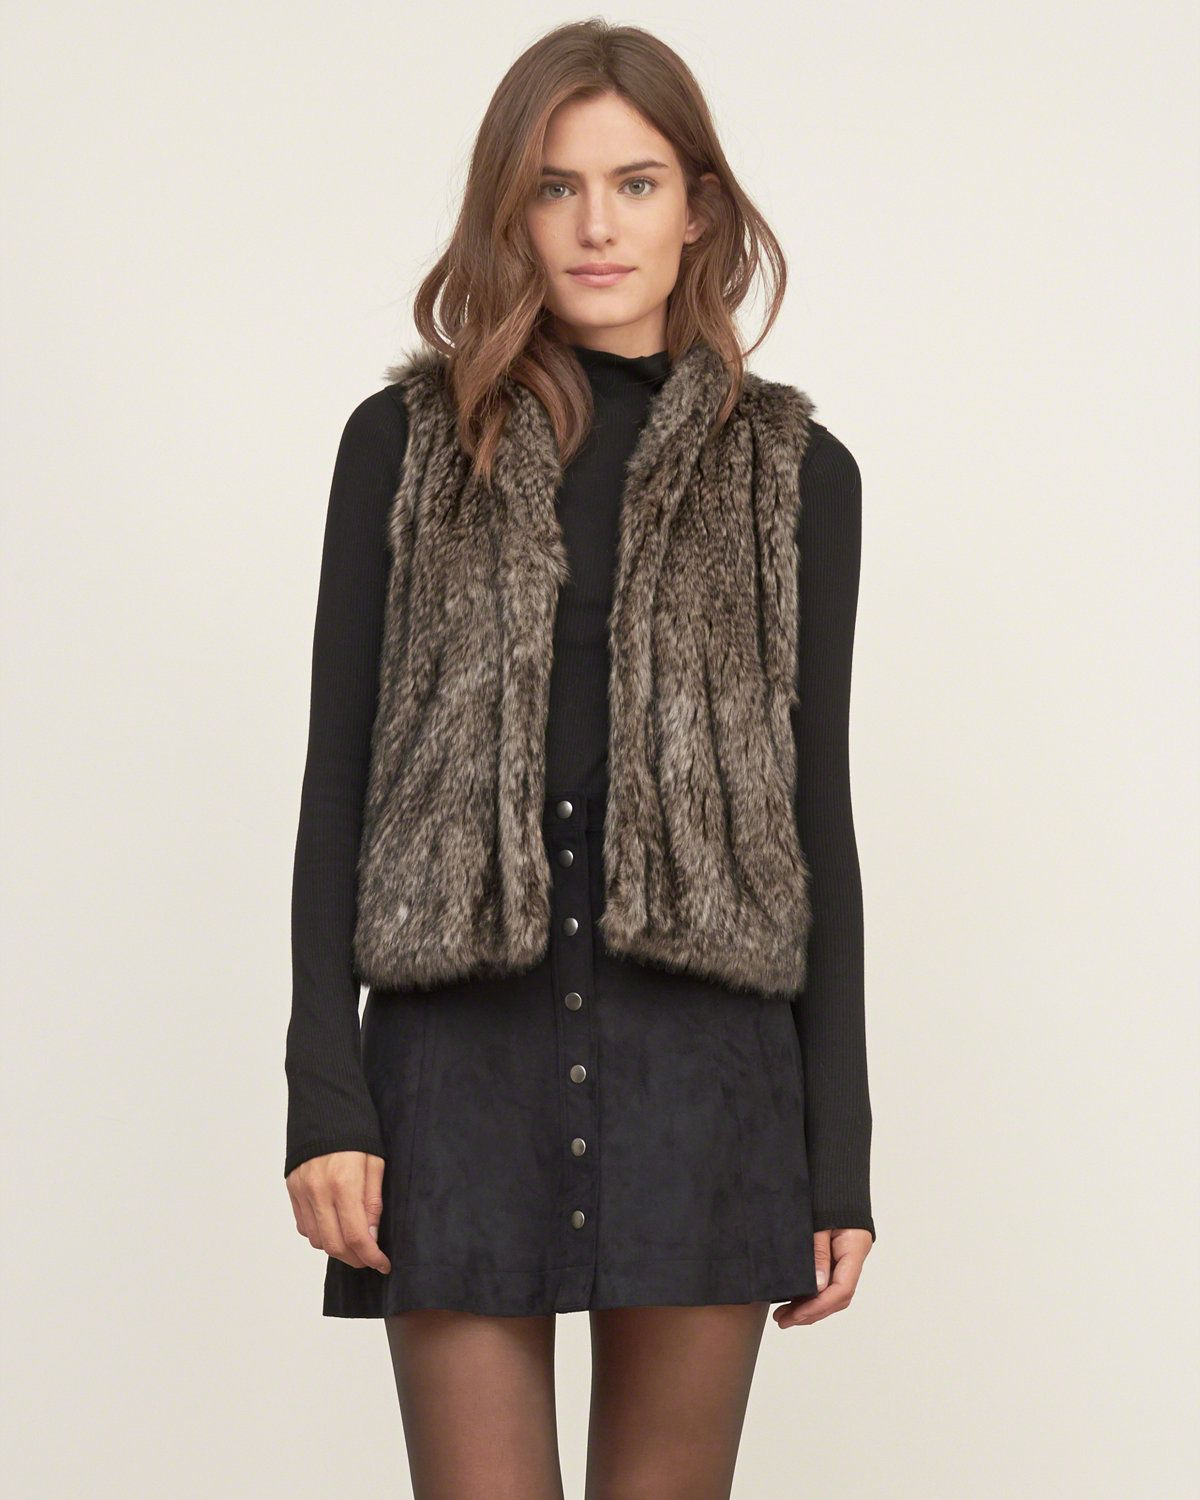 Find fur vest at Macy's Macy's Presents: The Edit - A curated mix of fashion and inspiration Check It Out Free Shipping with $49 purchase + Free Store Pickup.